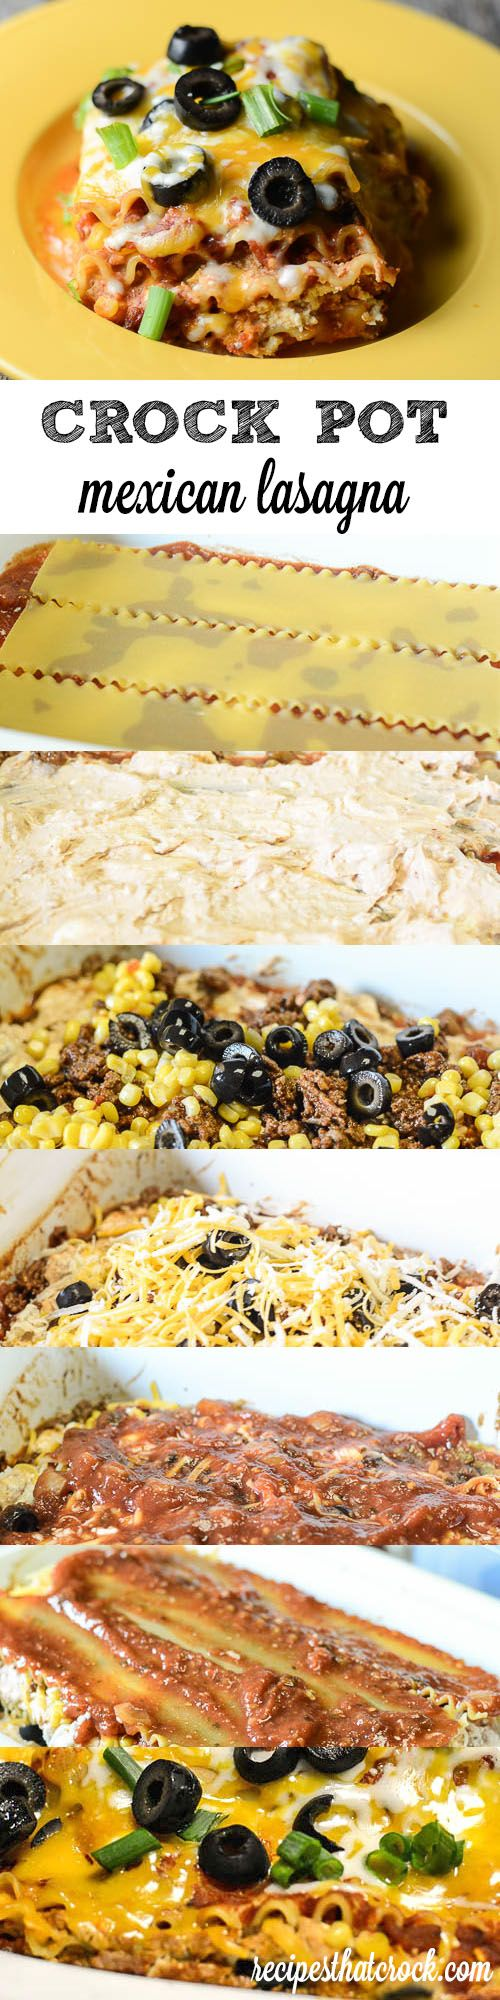 Crock Pot Mexican Lasagna: The perfect slow cooker dish for your next family…